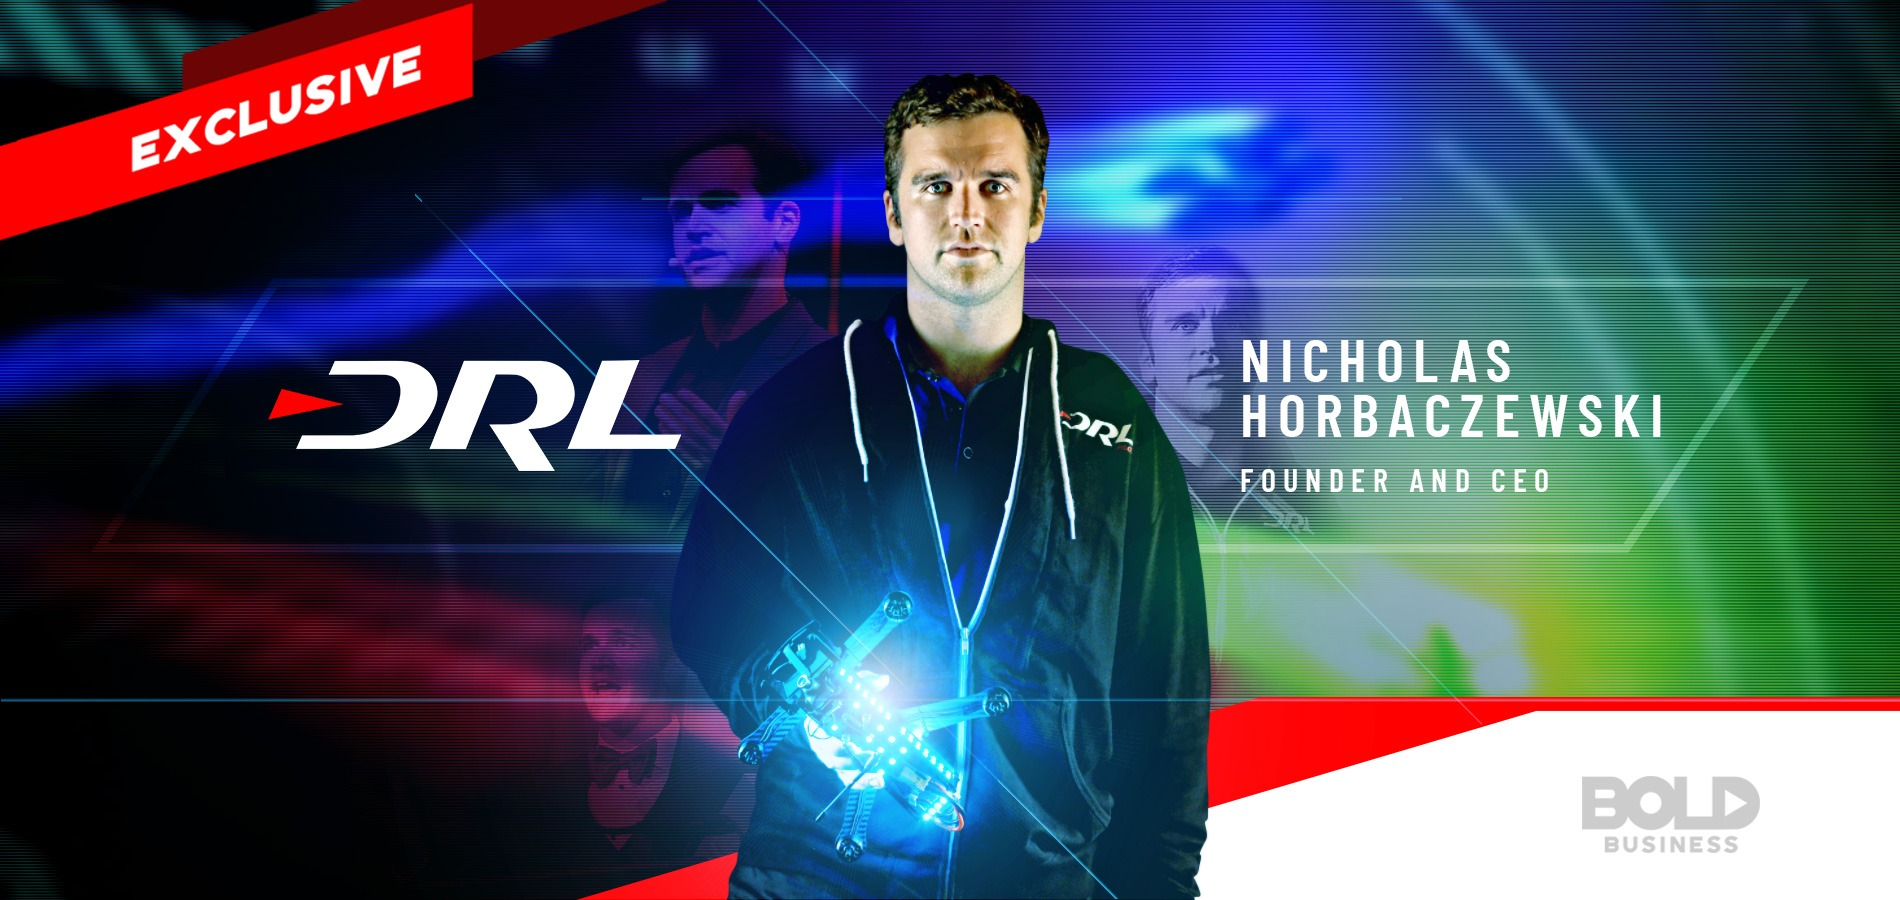 Nicholas Horbaczewski made the Drone Racing League into a viable sports property through bold leadership.